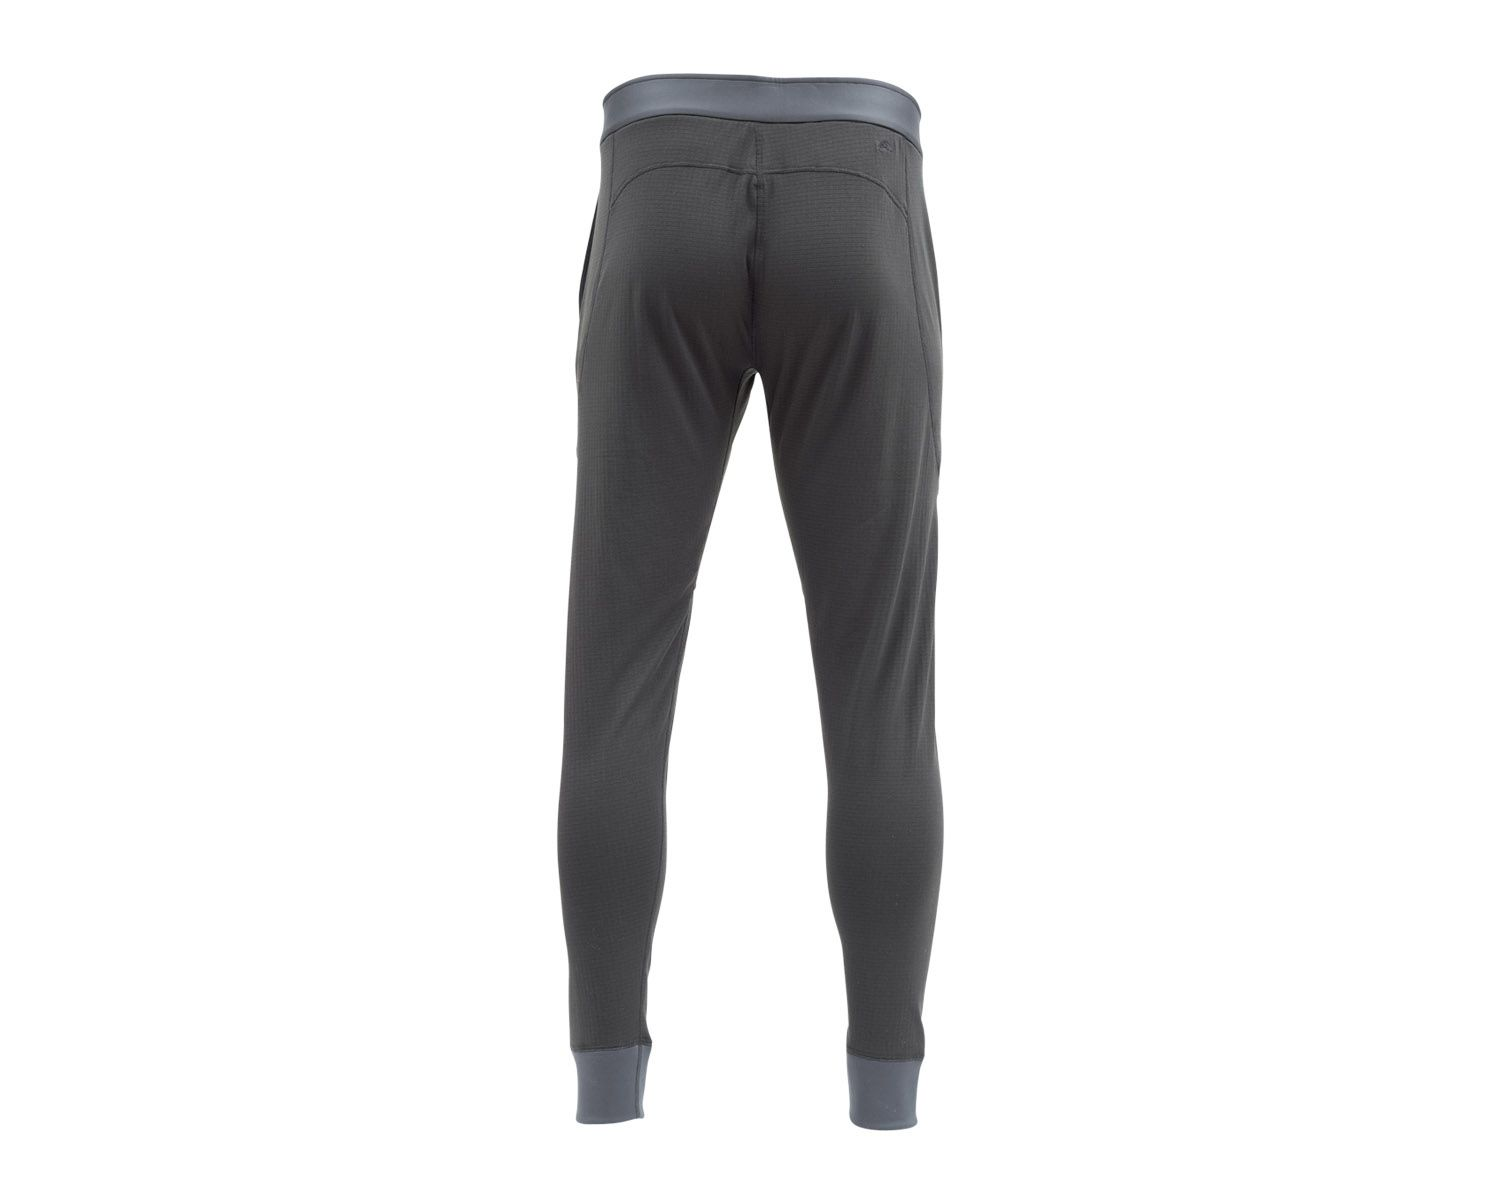 Simms Fleece Mid Layer Bottom